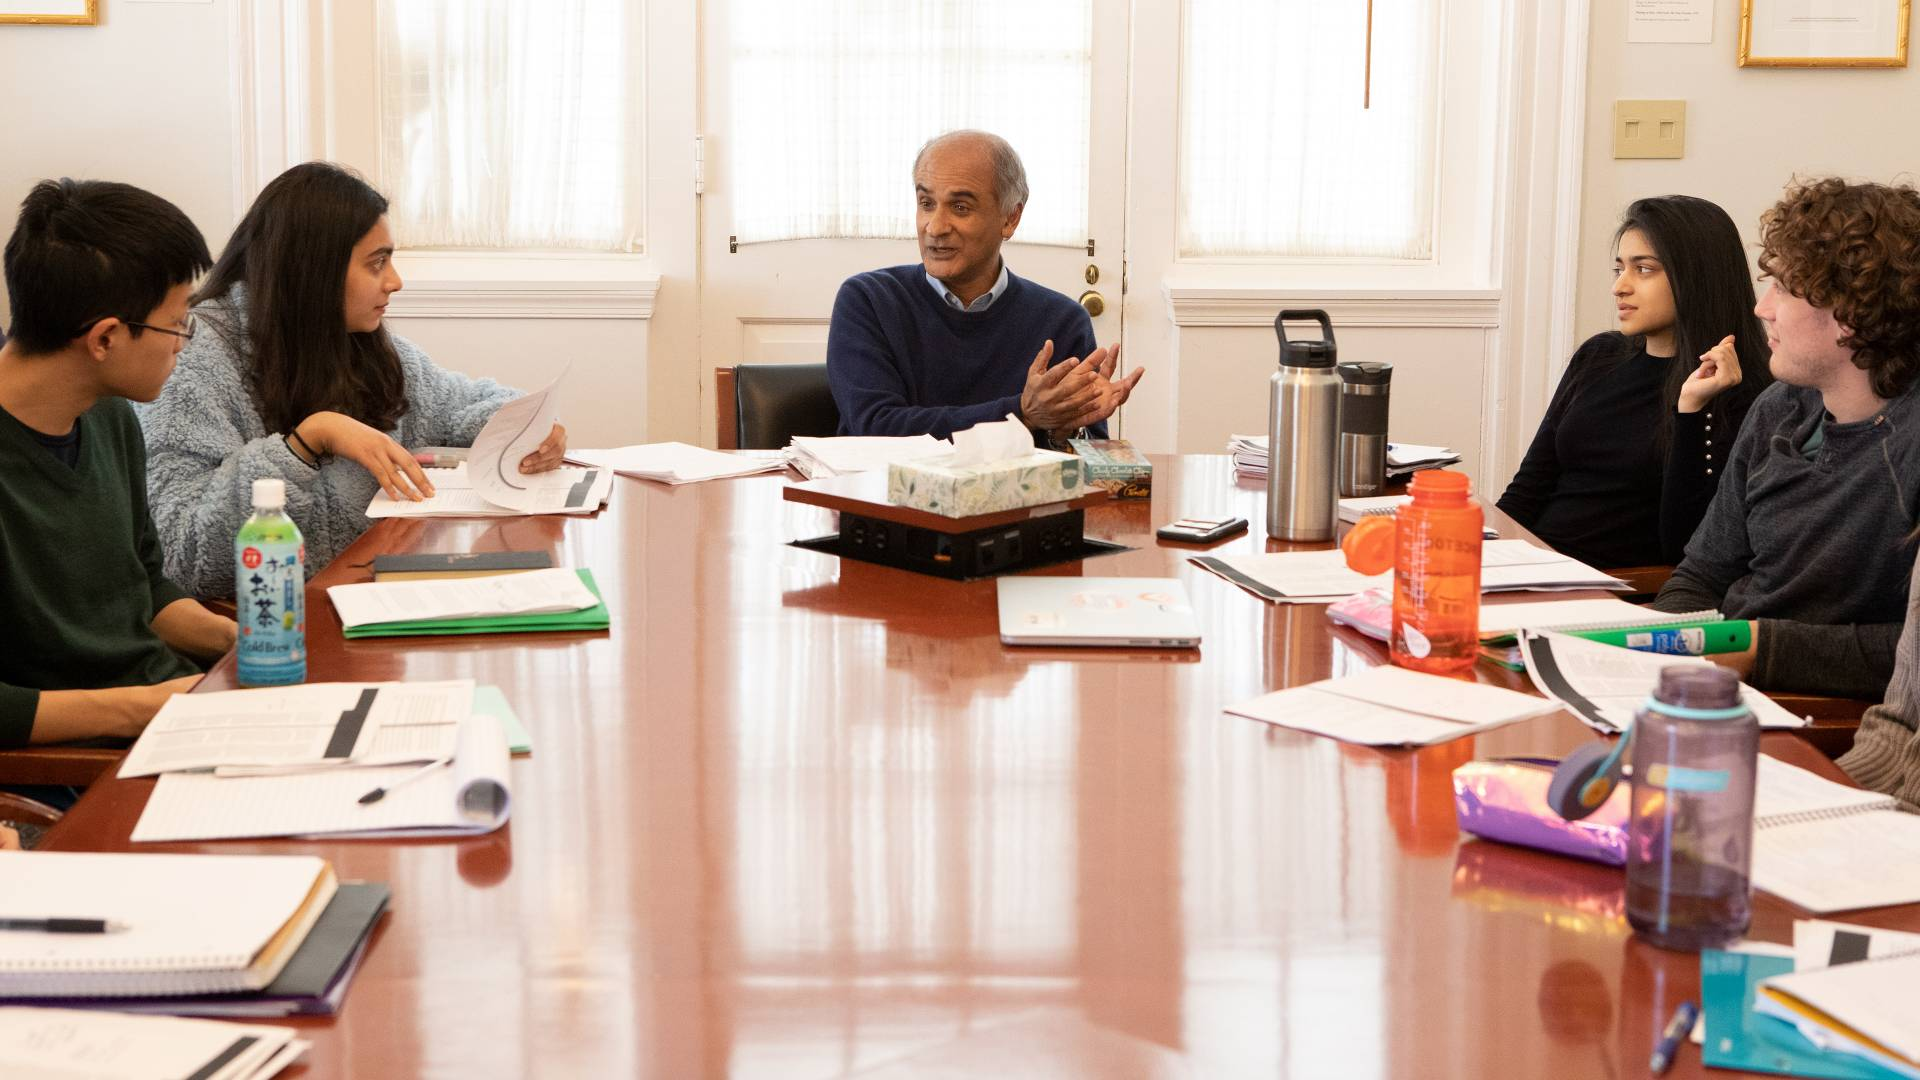 Pico Iyer and students sitting around table